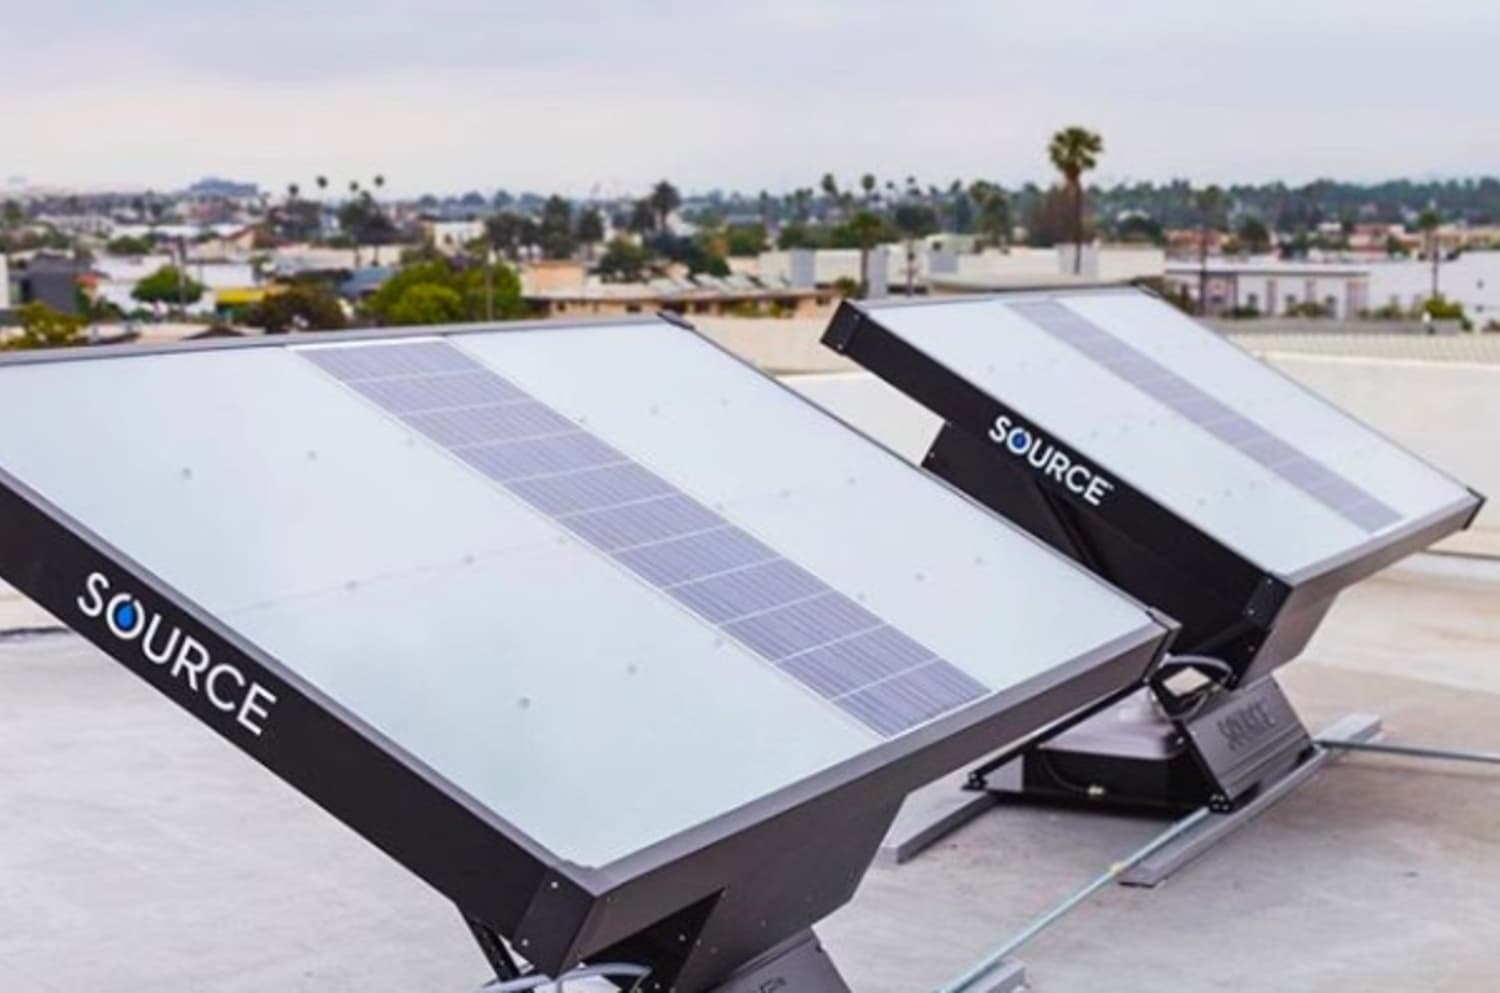 This Solar Panel-Like Device Can Collect and Filter Drinking Water from the Air